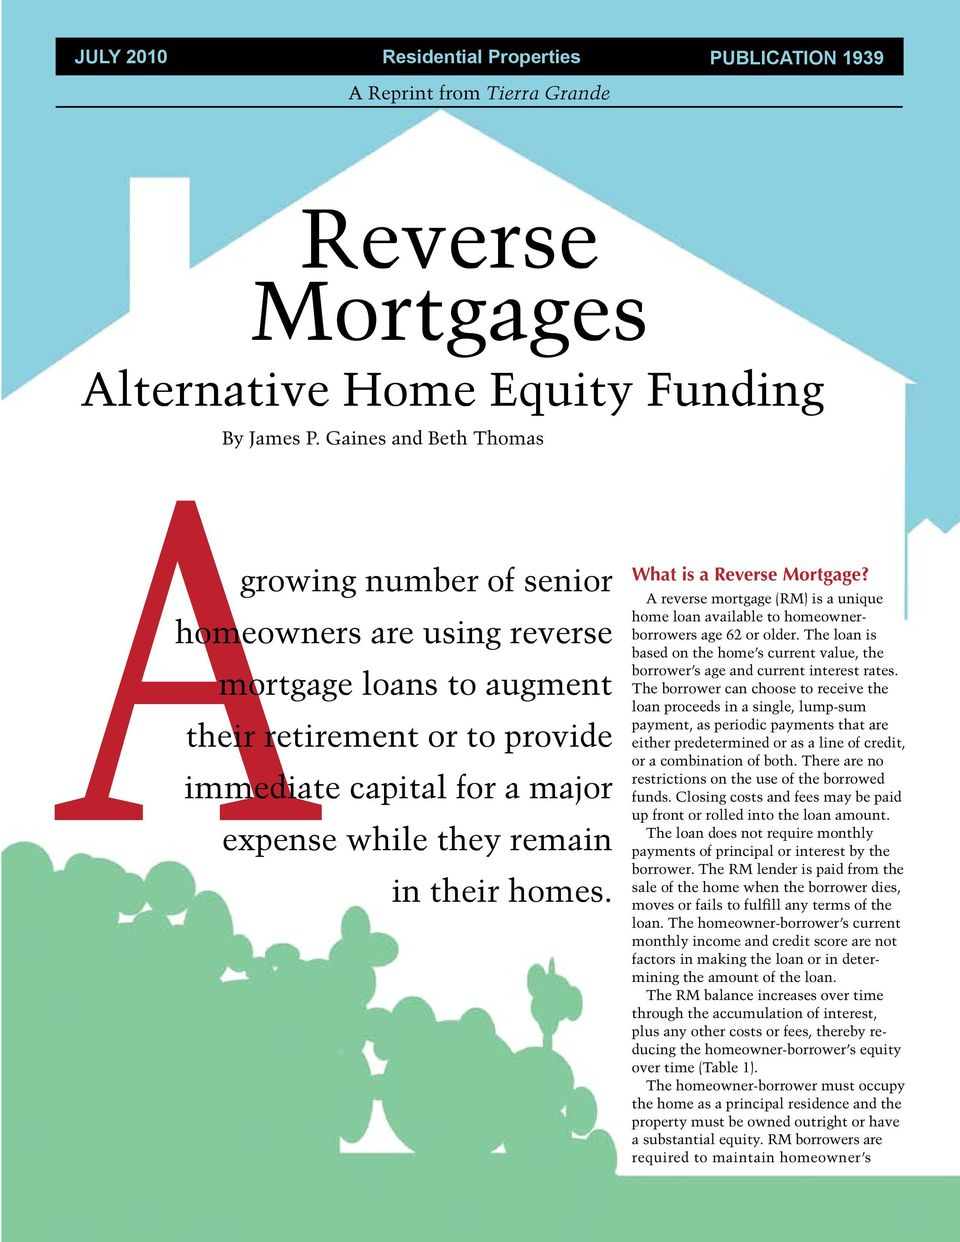 homes. What is a Reverse Mortgage? A reverse mortgage (RM) is a unique home loan available to homeownerborrowers age 62 or older.